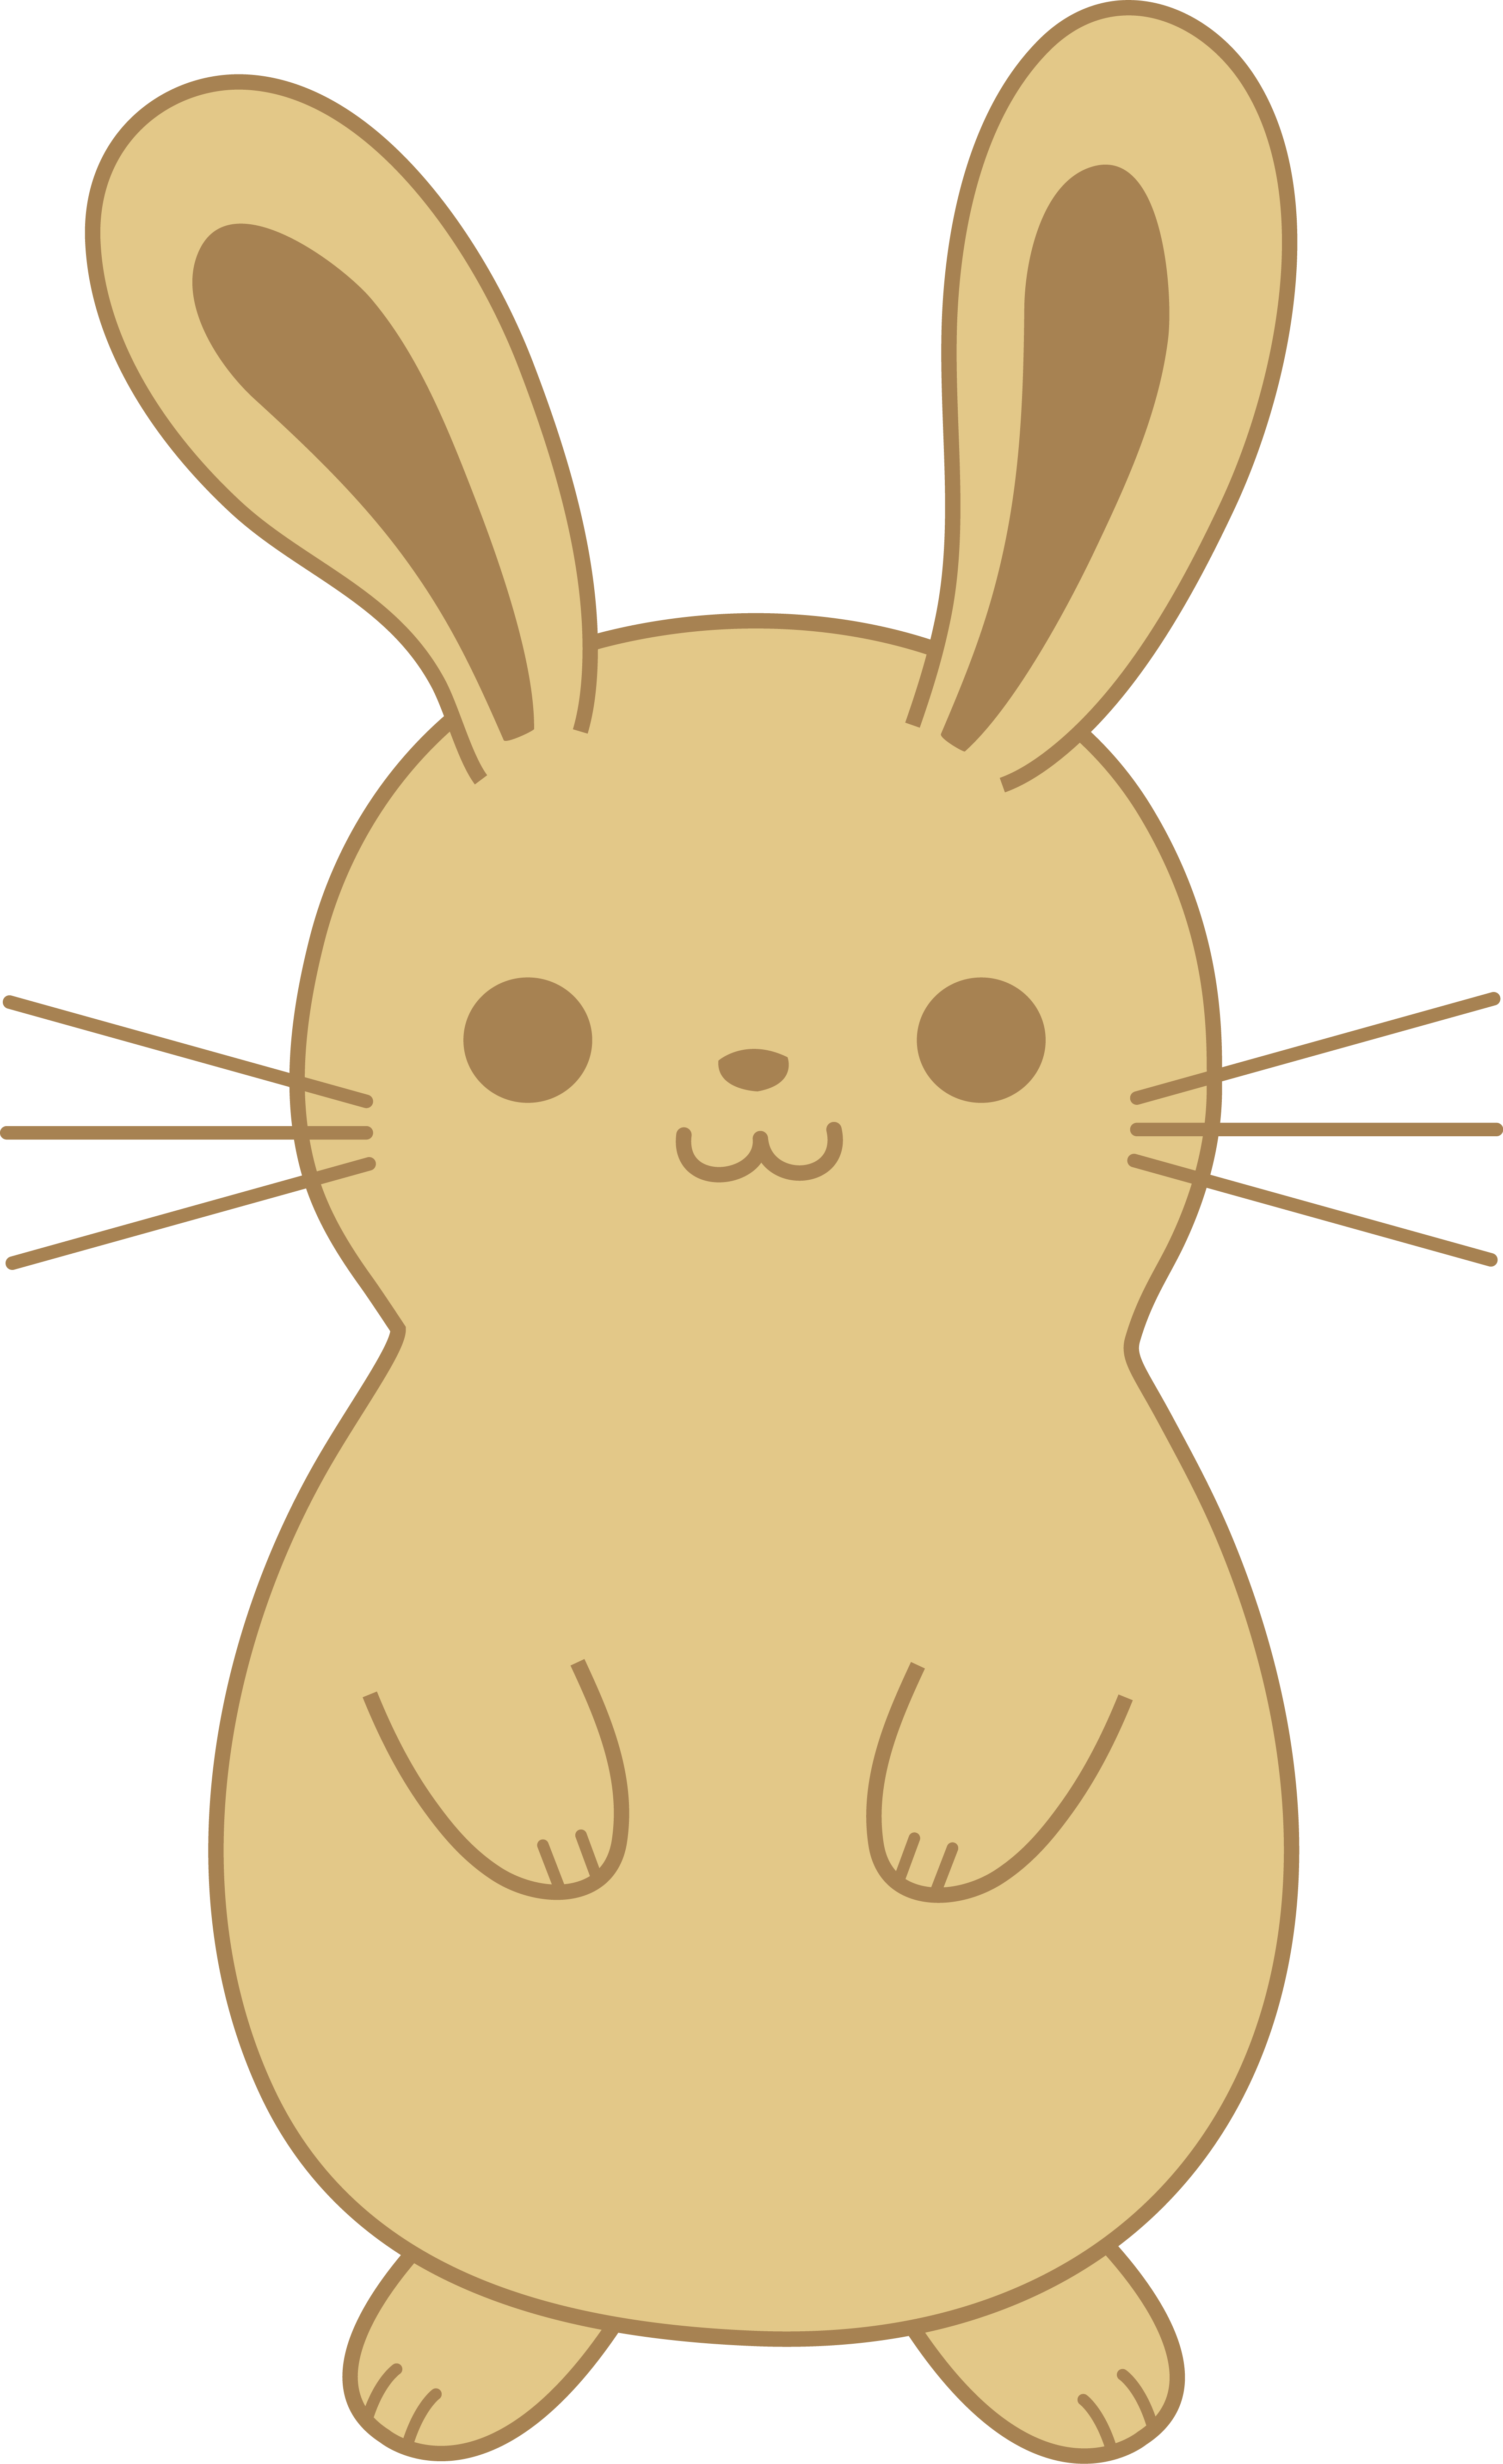 Animated rabbit clip art danasrfh top.